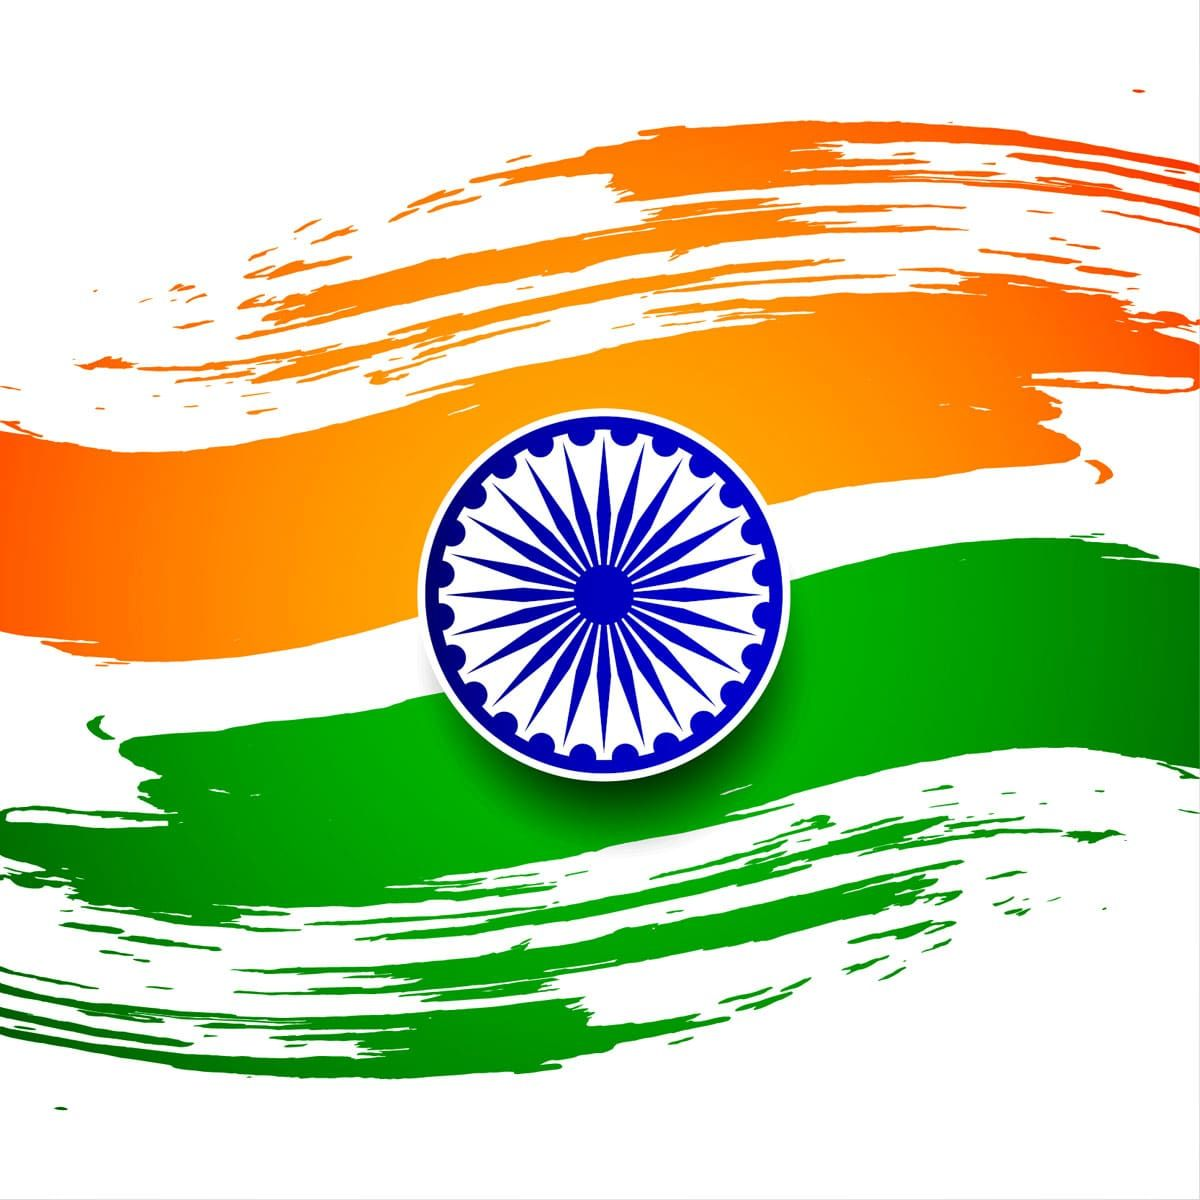 Indian Flag Images 1080p.